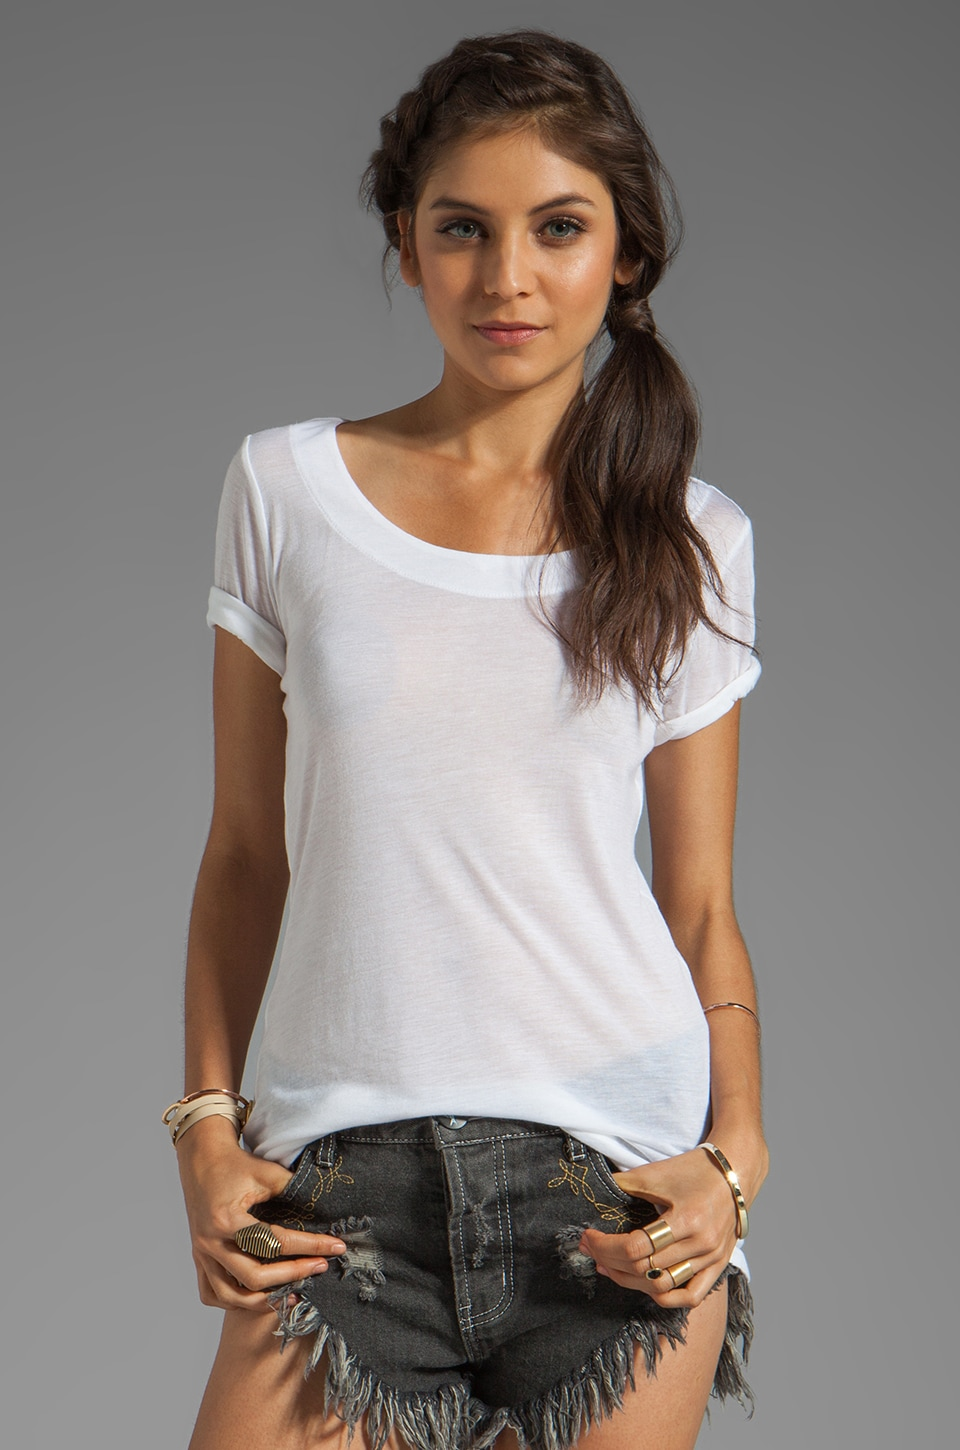 Kain Sheer Jersey Paloma Tee in White